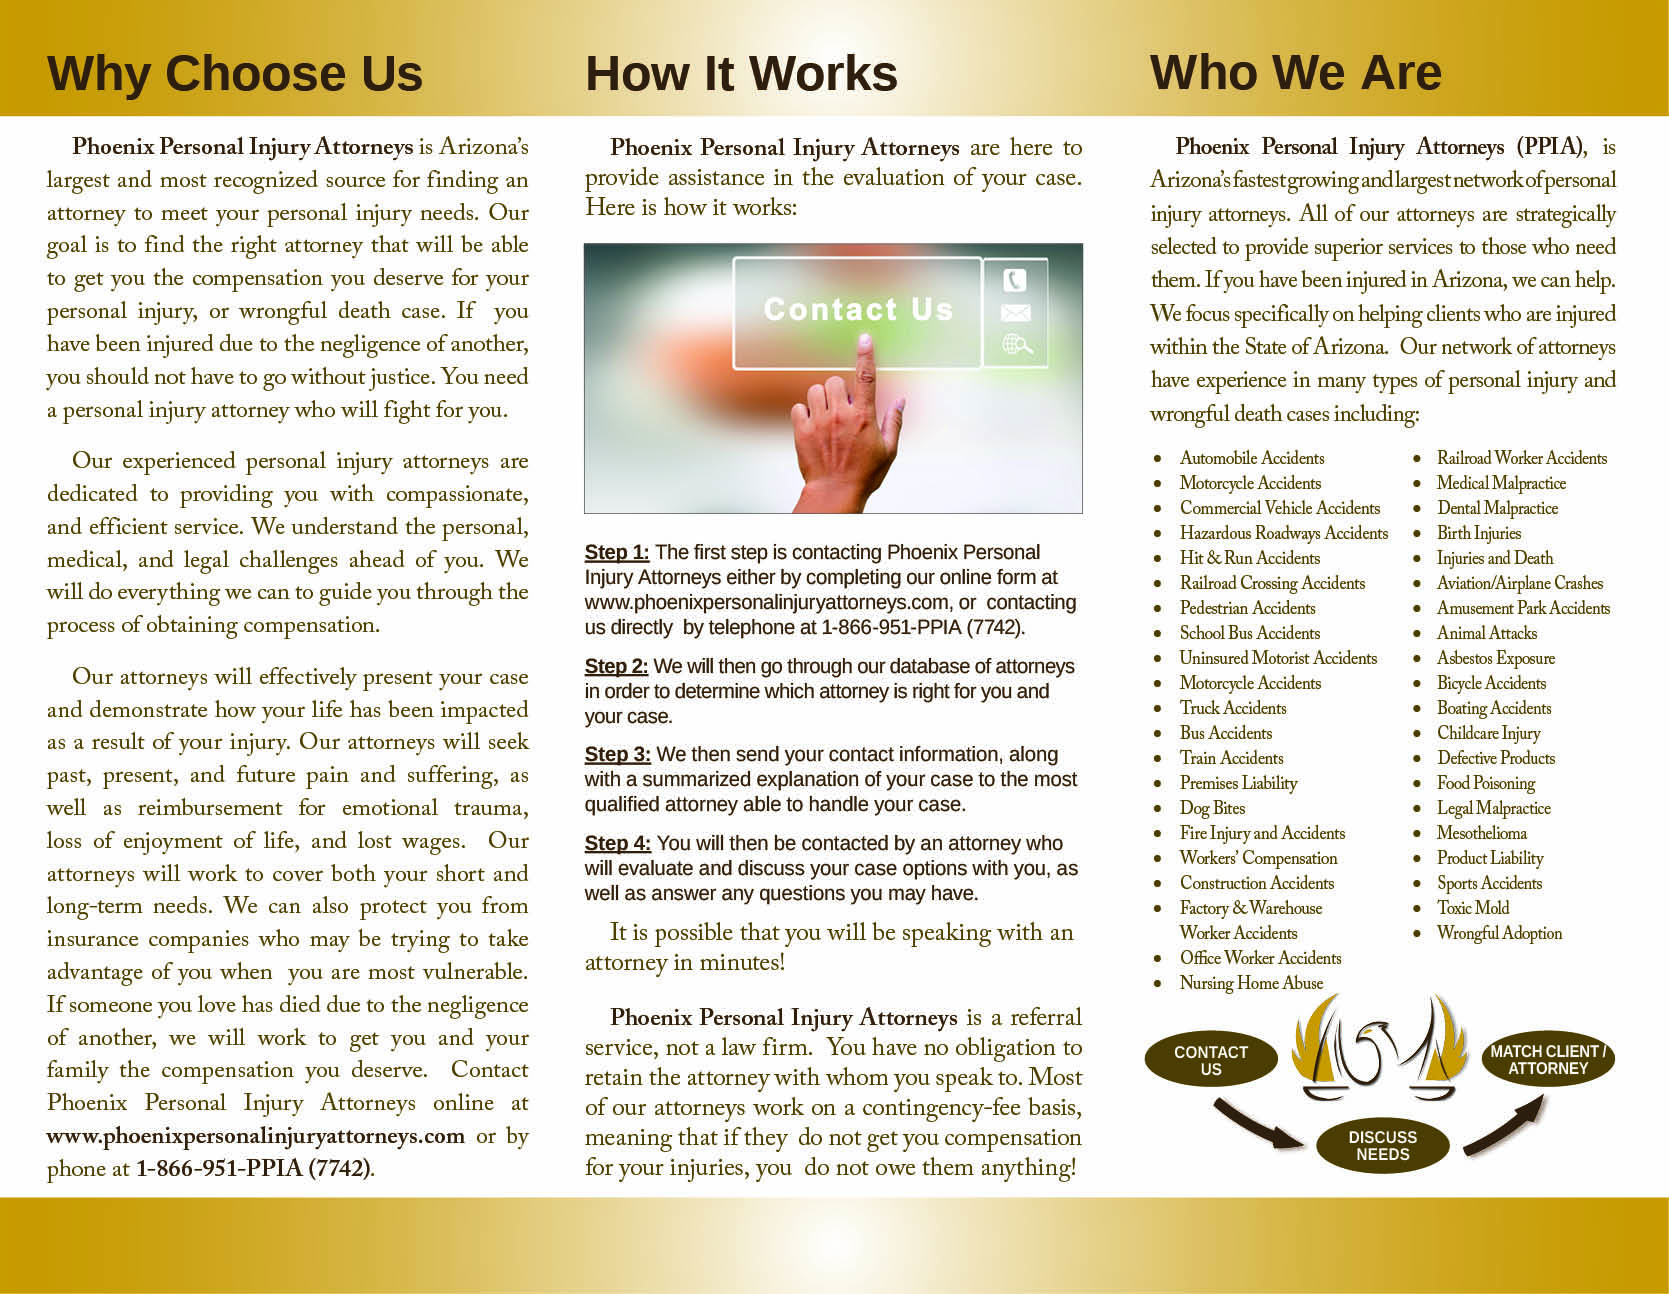 Phoenix Personal Injury Attorneys, trifold brochure, inside